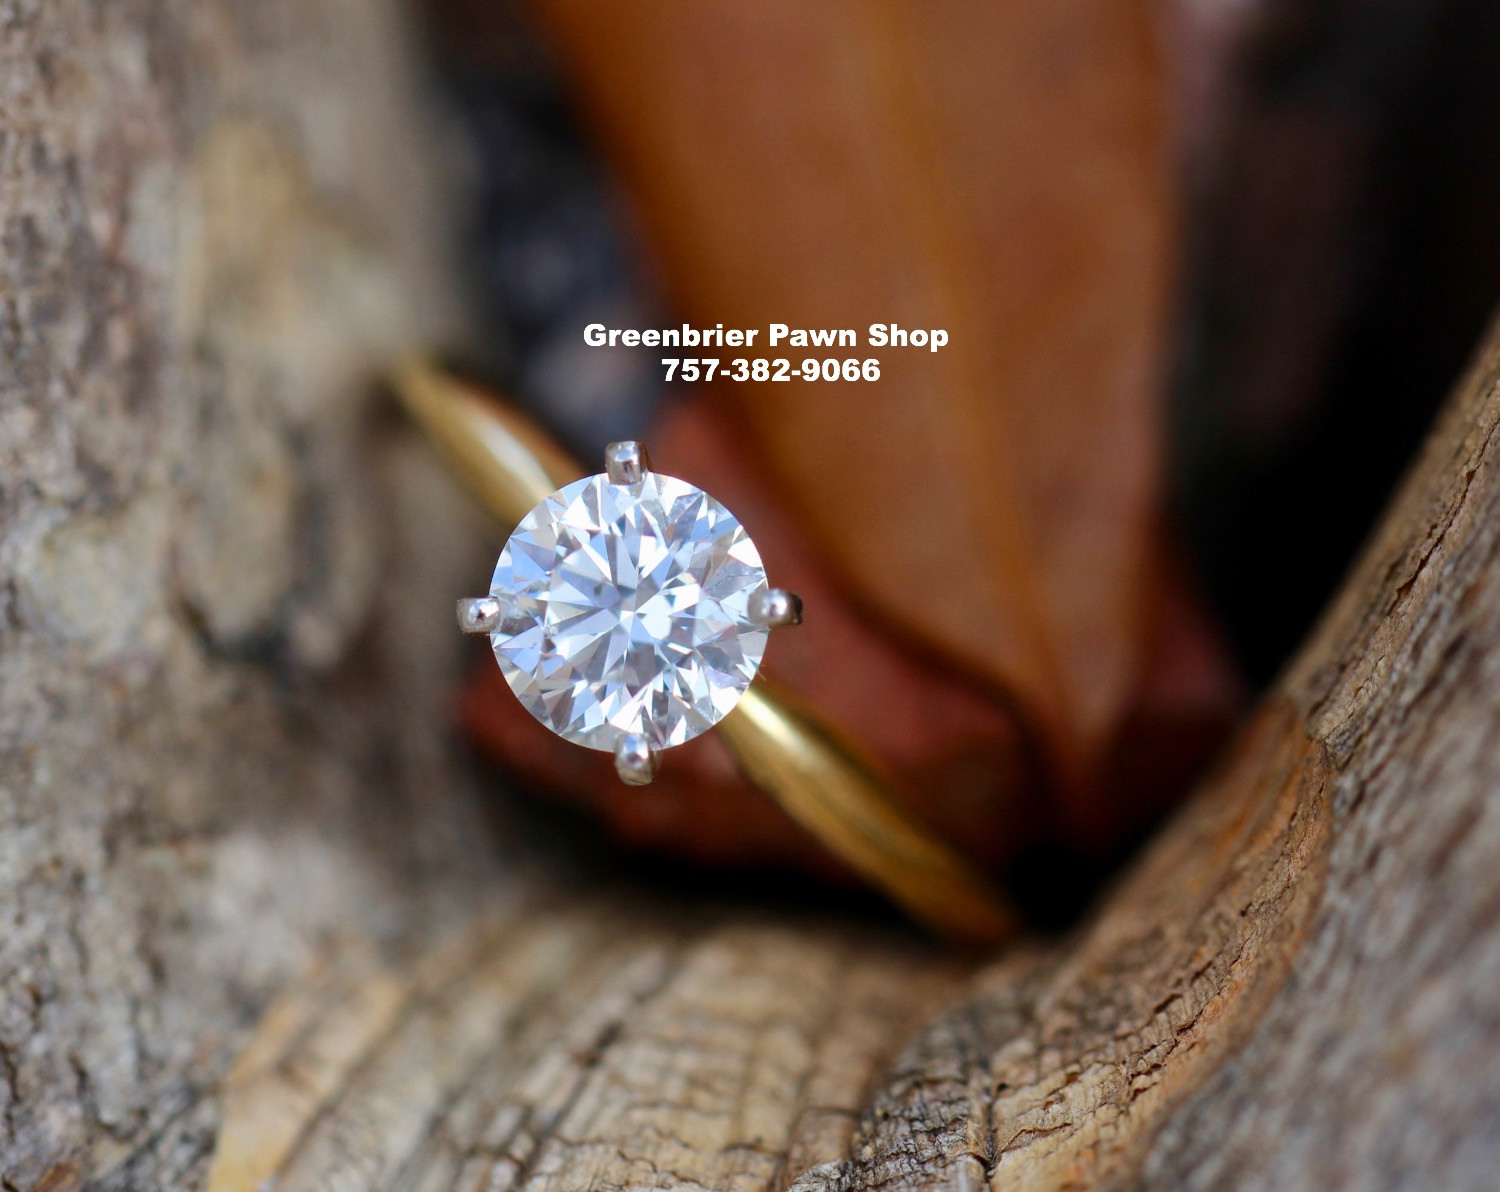 beach shot rings for engagement the photo virginia wedding and photographing ring tips photographer nailing